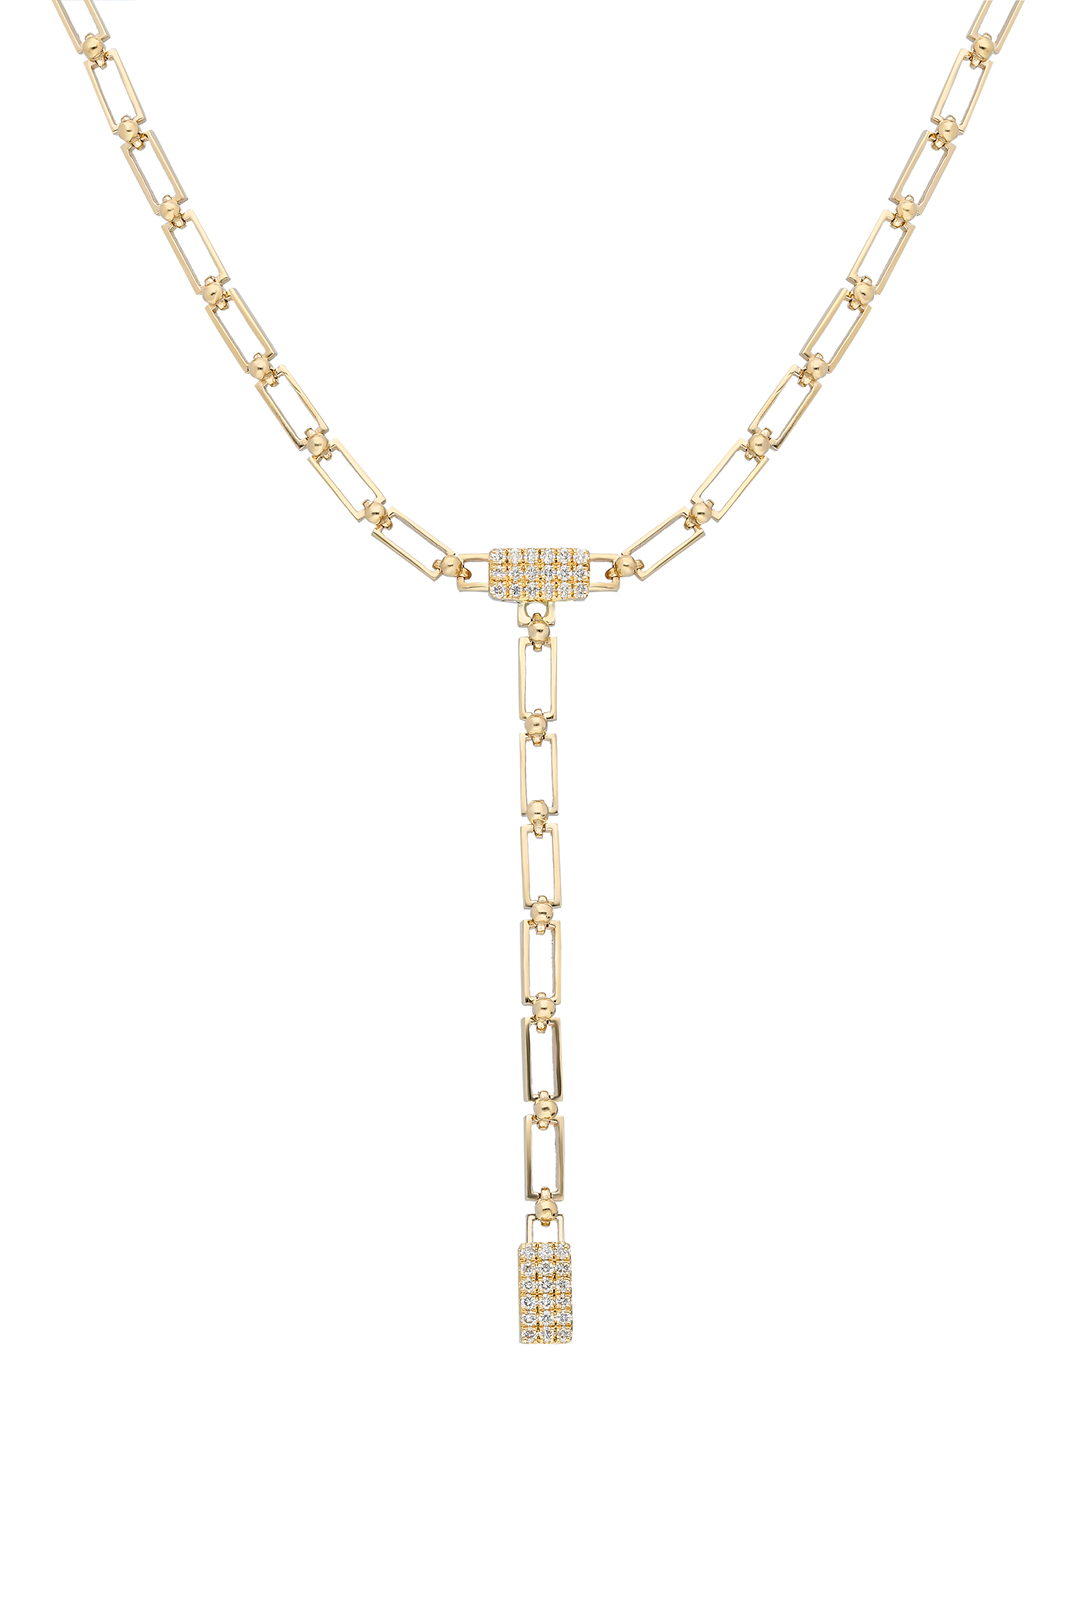 RECTANGLE DIAMOND CHOKER AND NECKLACE